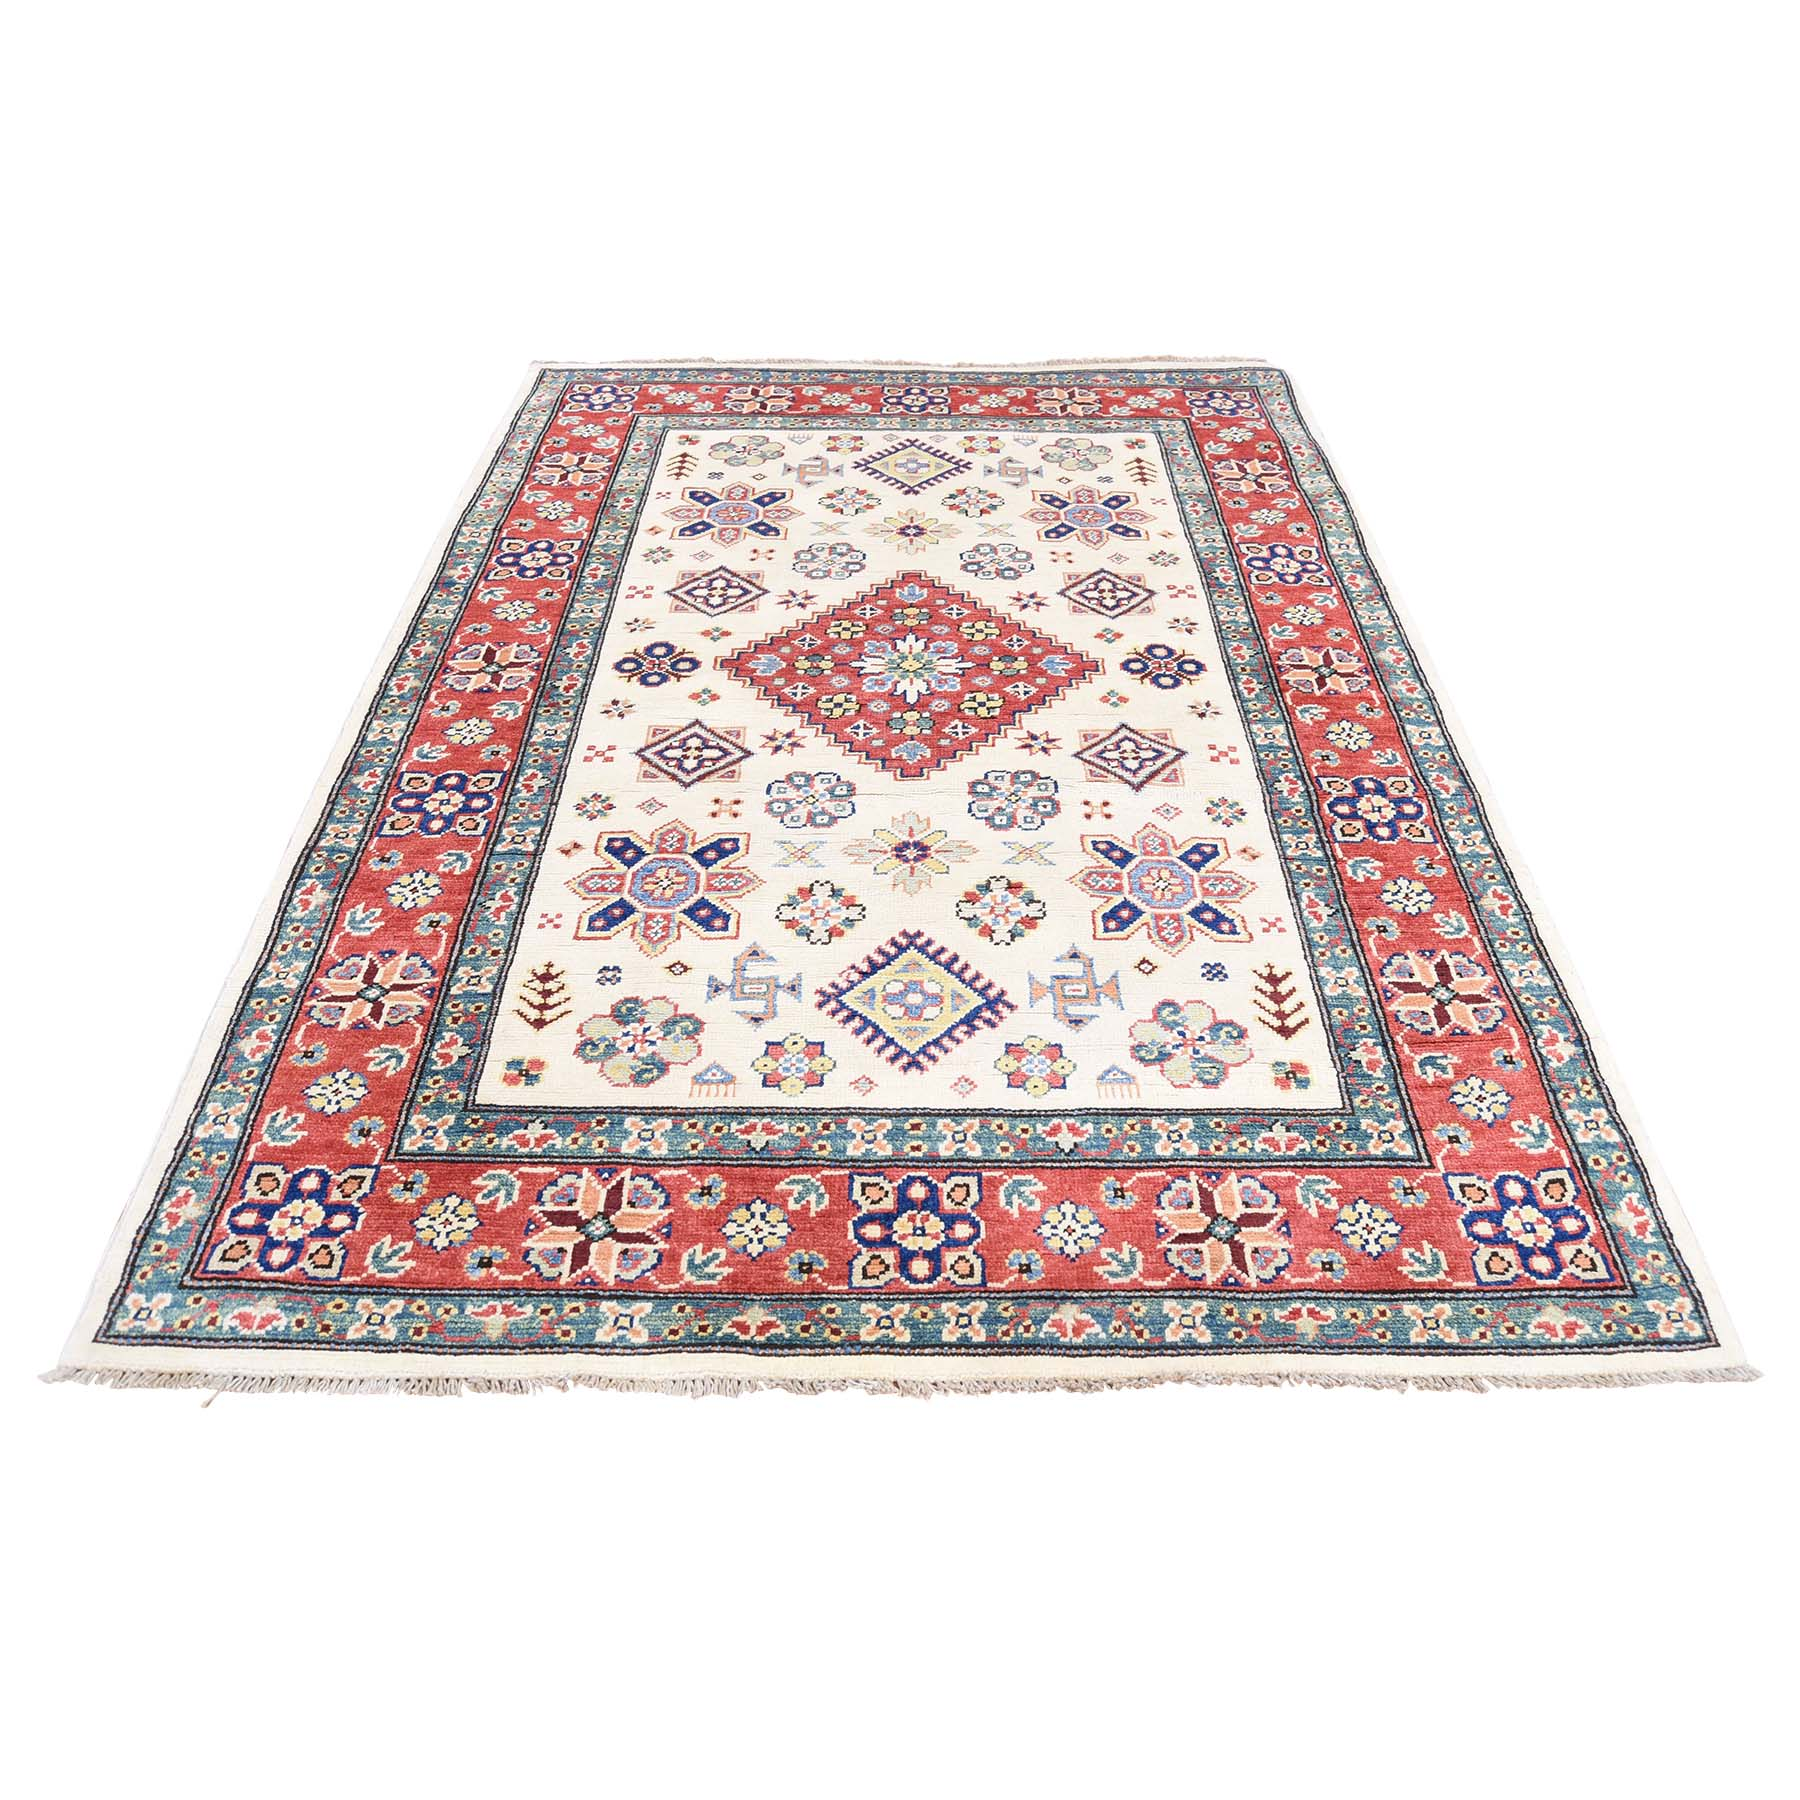 4'X5'8'' Ivory Special Kazak Pure Wool Hand-Knotted Tribal Design Oriental Rug moac88a7